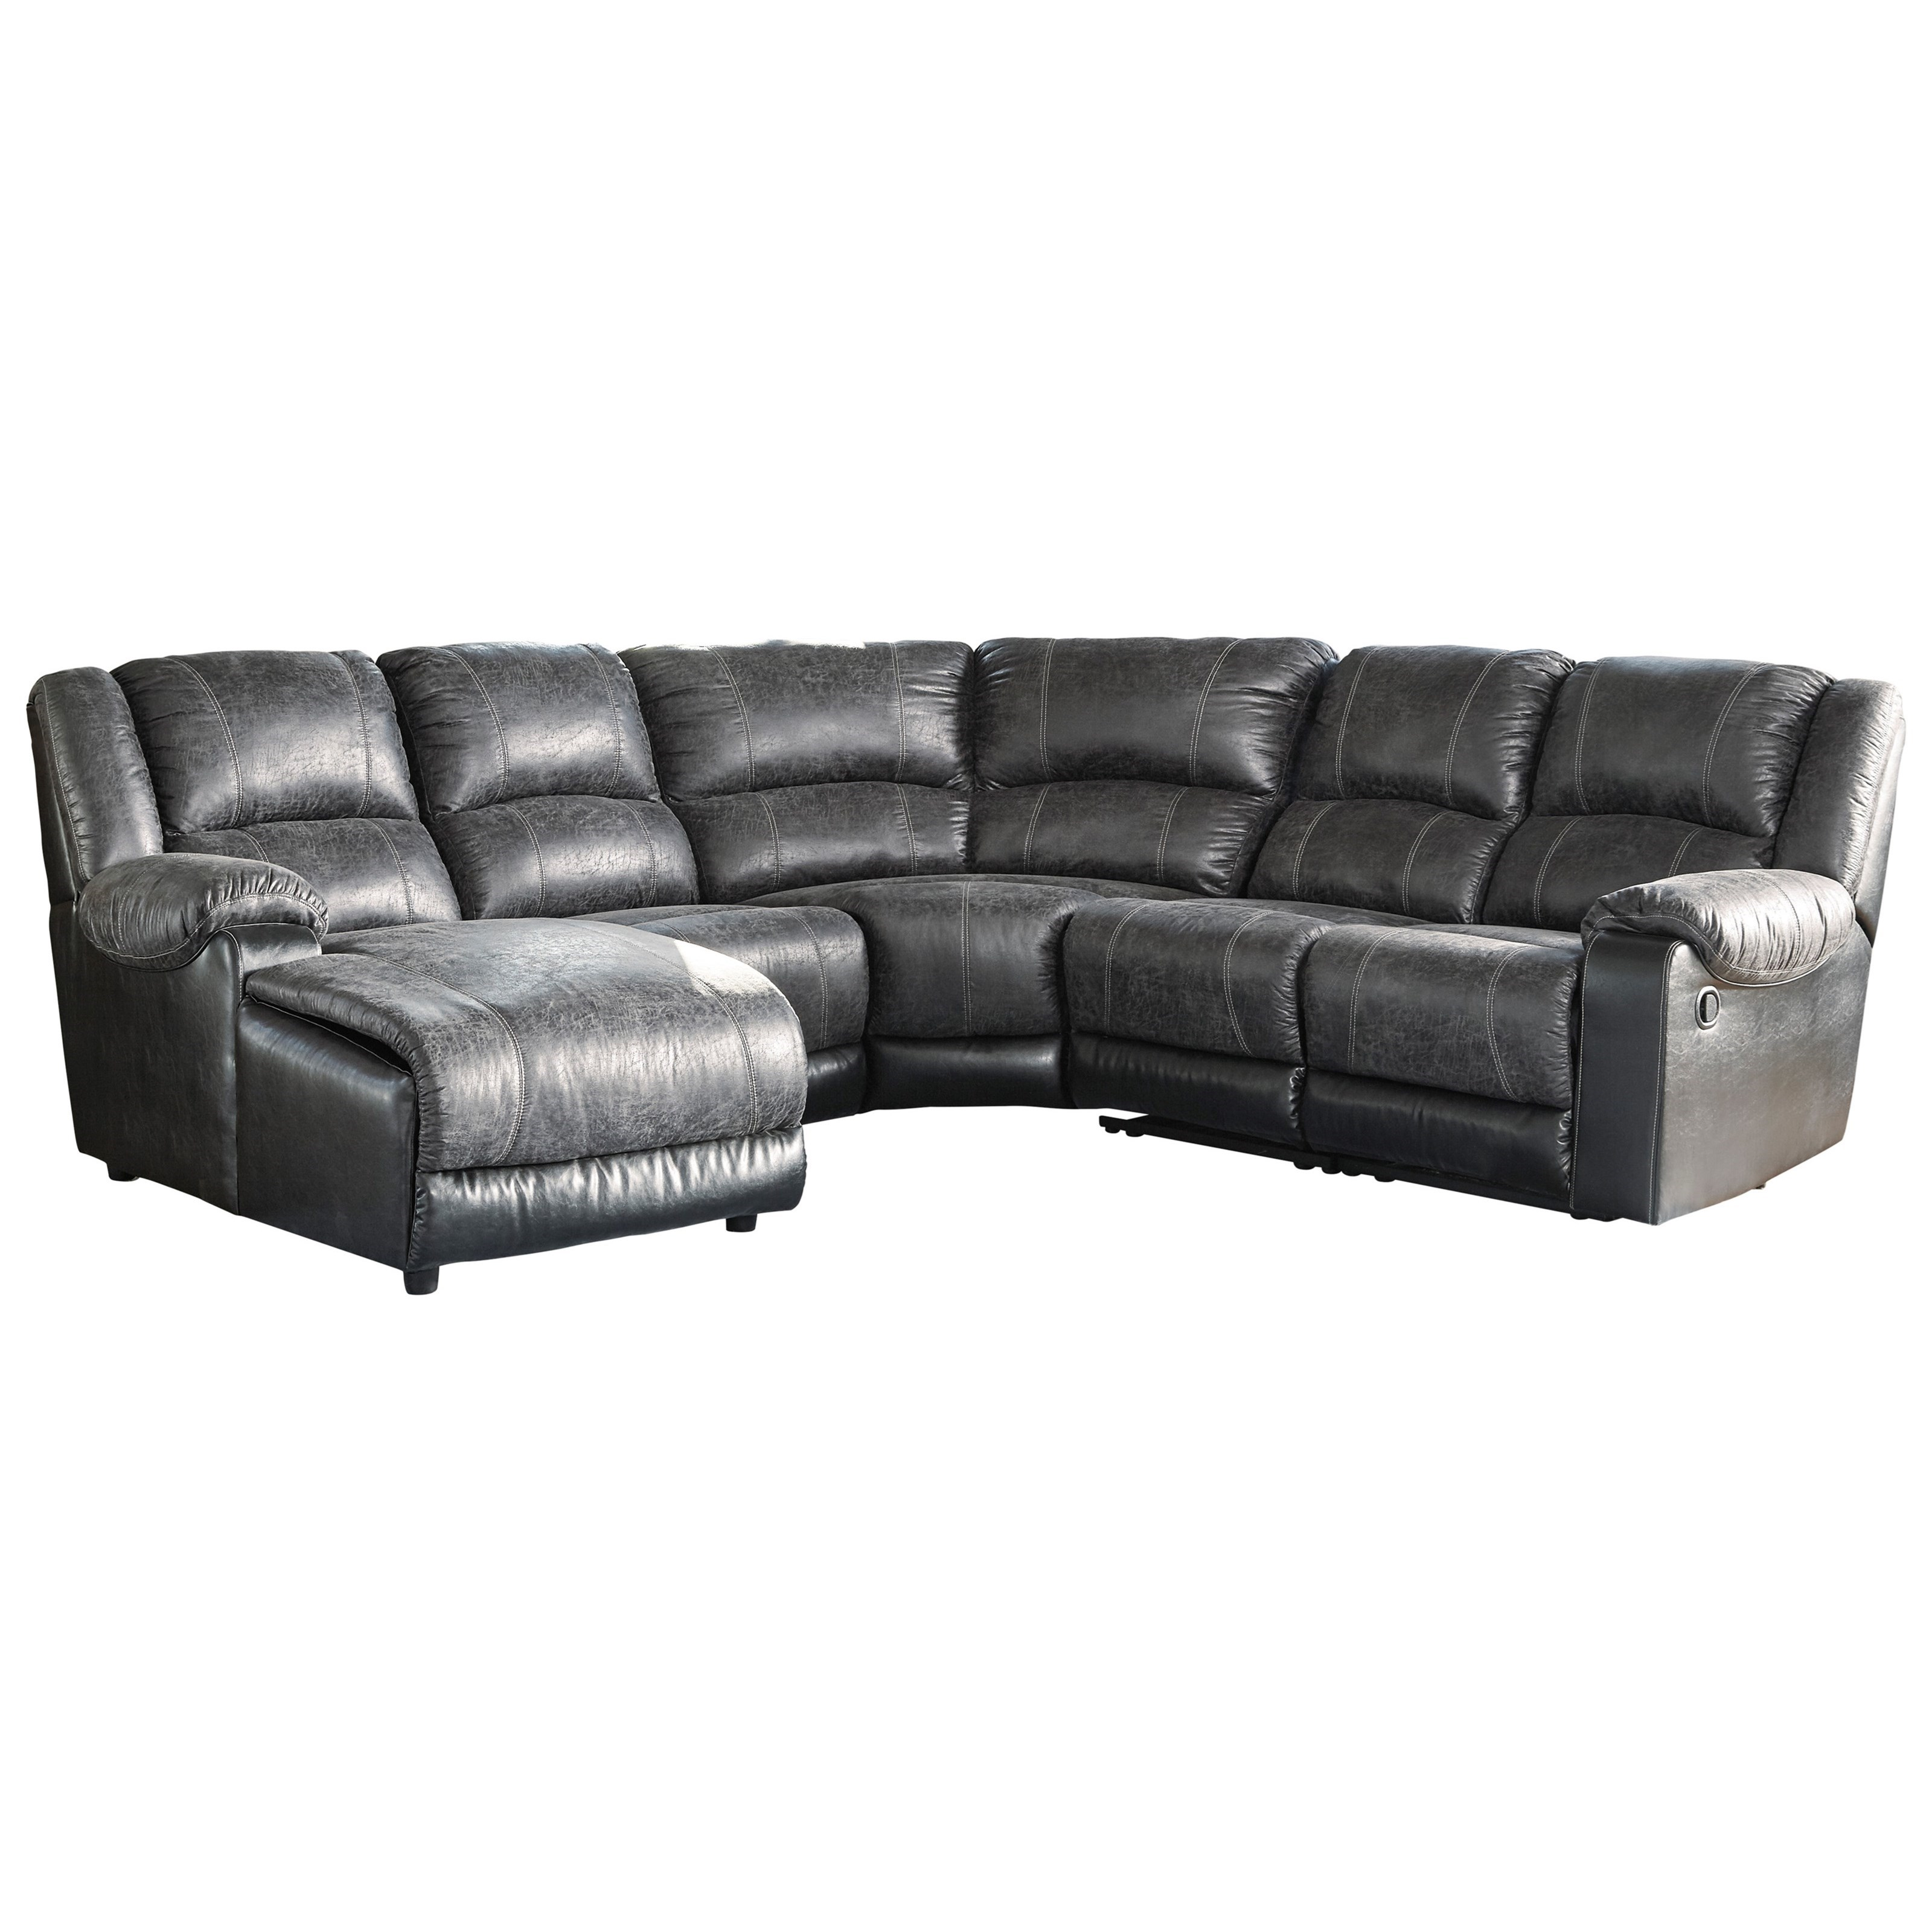 piece sofa leather with reclining coaster recliner number products item chestnut and mackenzie chaise sectional